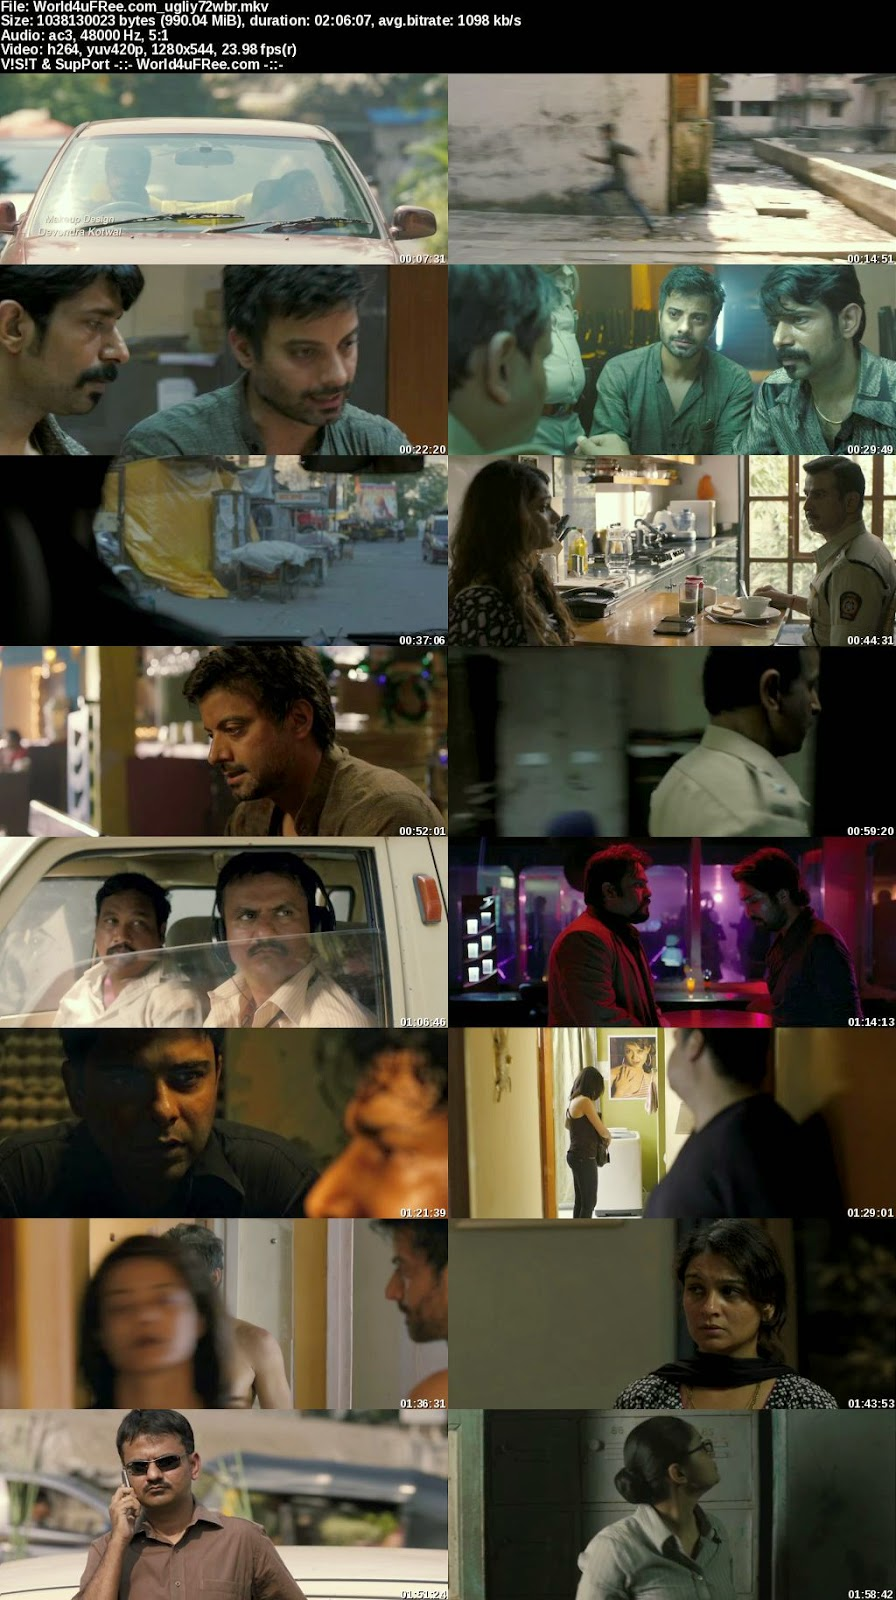 Ugly 2014 Hindi 720p BluRay 1GB Bollywood movie Ugly hindi movie Ugly movie 720p BRRip bluray dvd rip web rip hdrip 700mb free download or watch online at world4ufree.be